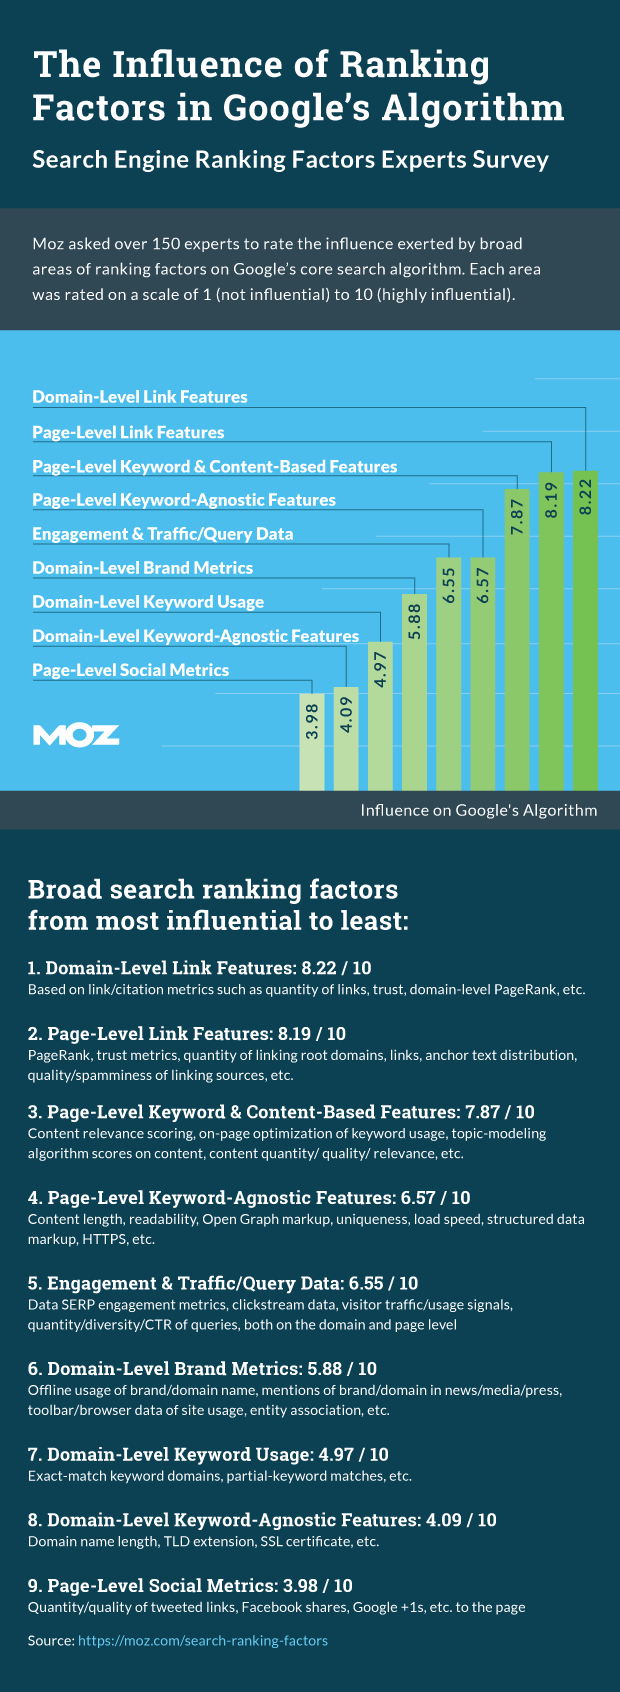 Search Engine Ranking Factors 2015